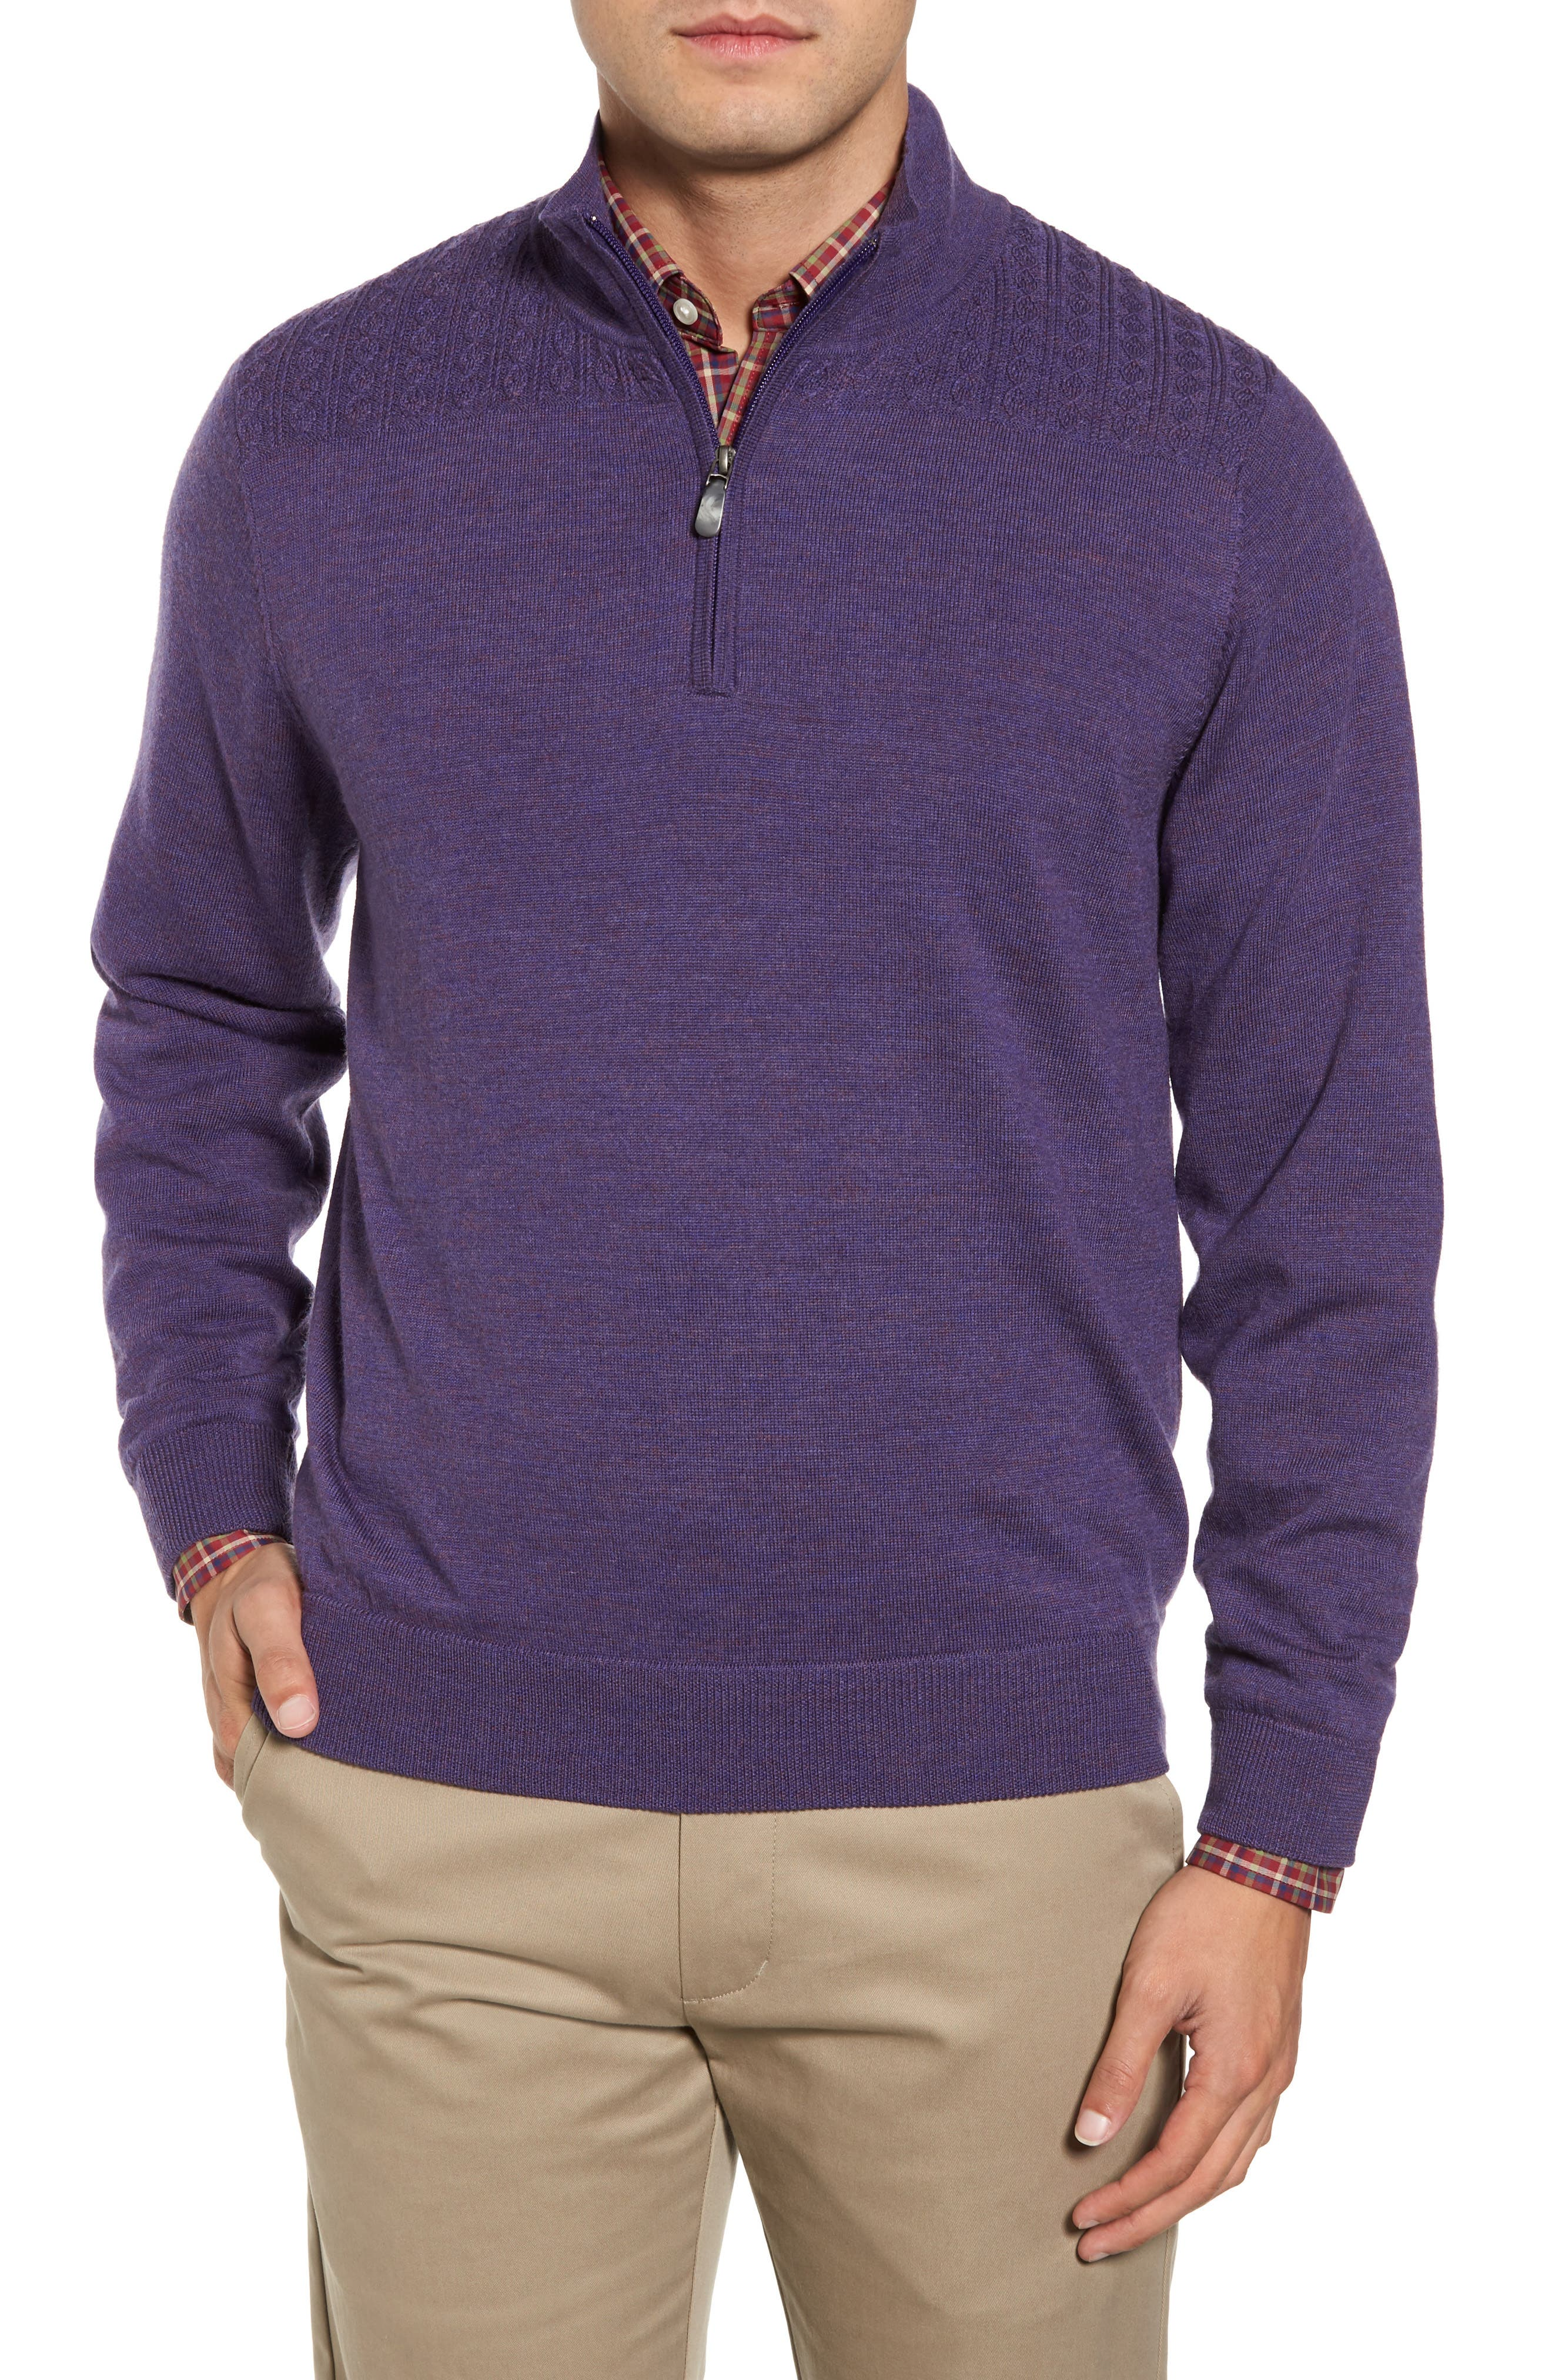 Bobby Jones Cable Wind Wool Sweater